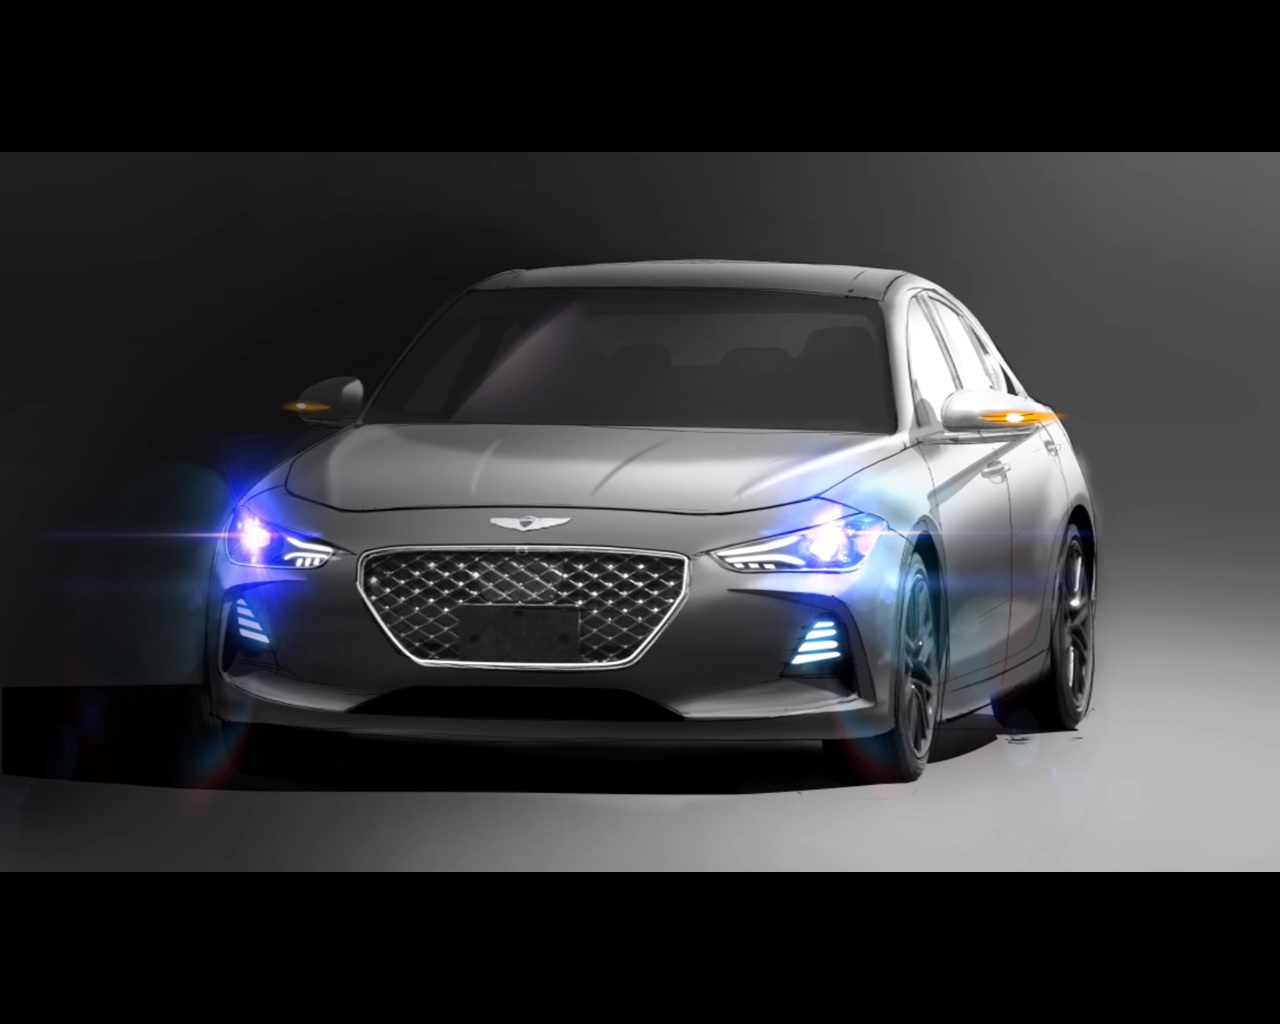 Watch 2018 Genesis G70 Sport Sedan Teaser Confirms September 15